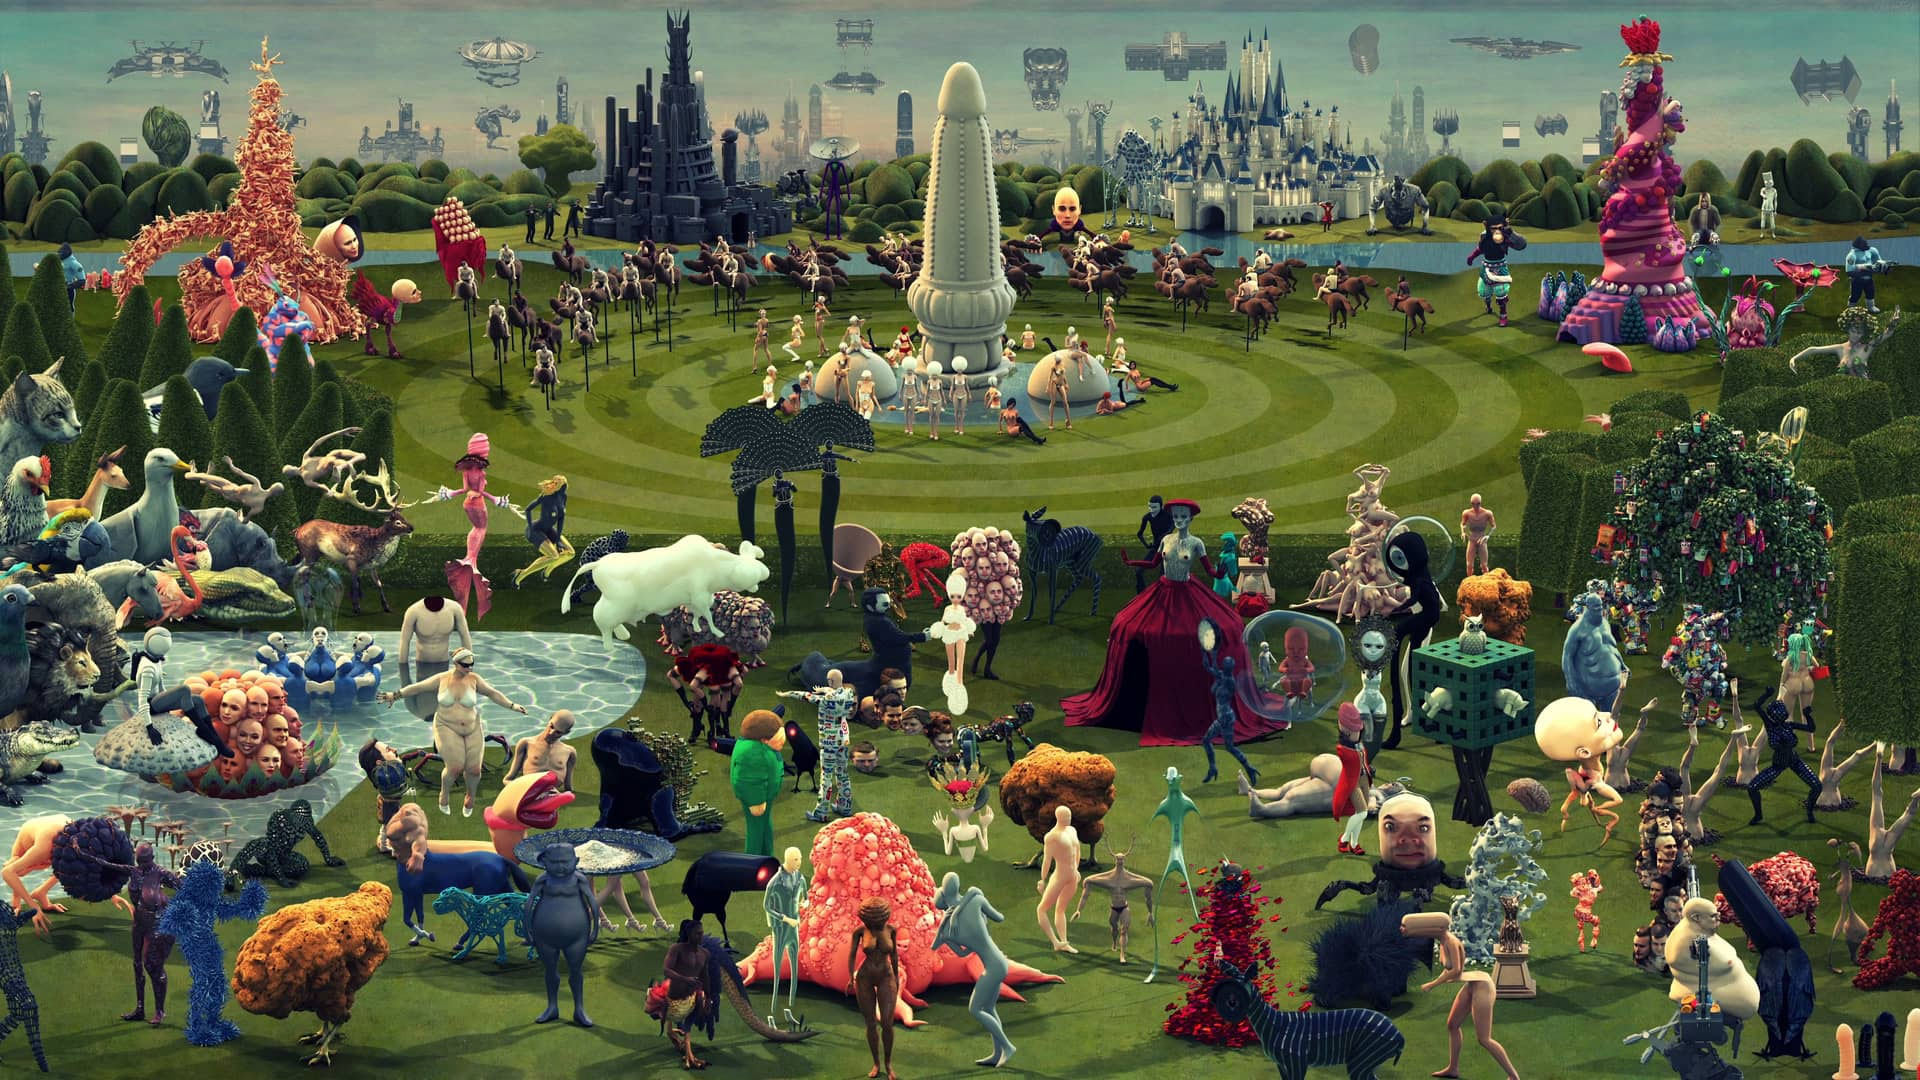 Garden of Earthly Delights animated by Studio Smack